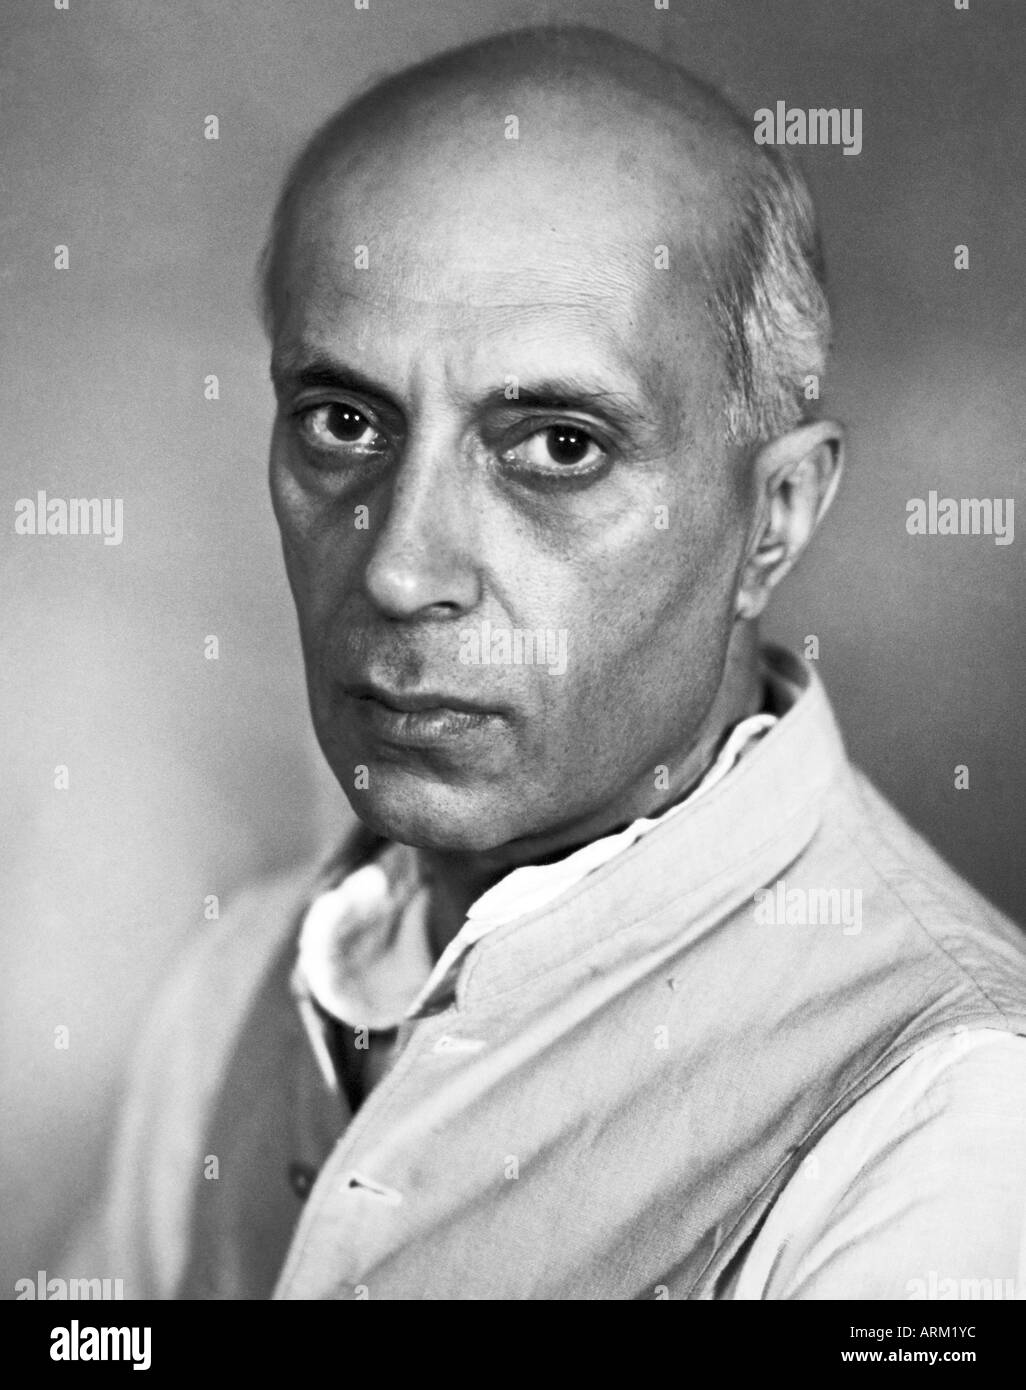 Indian Prime Minister Black and White Stock Photos & Images